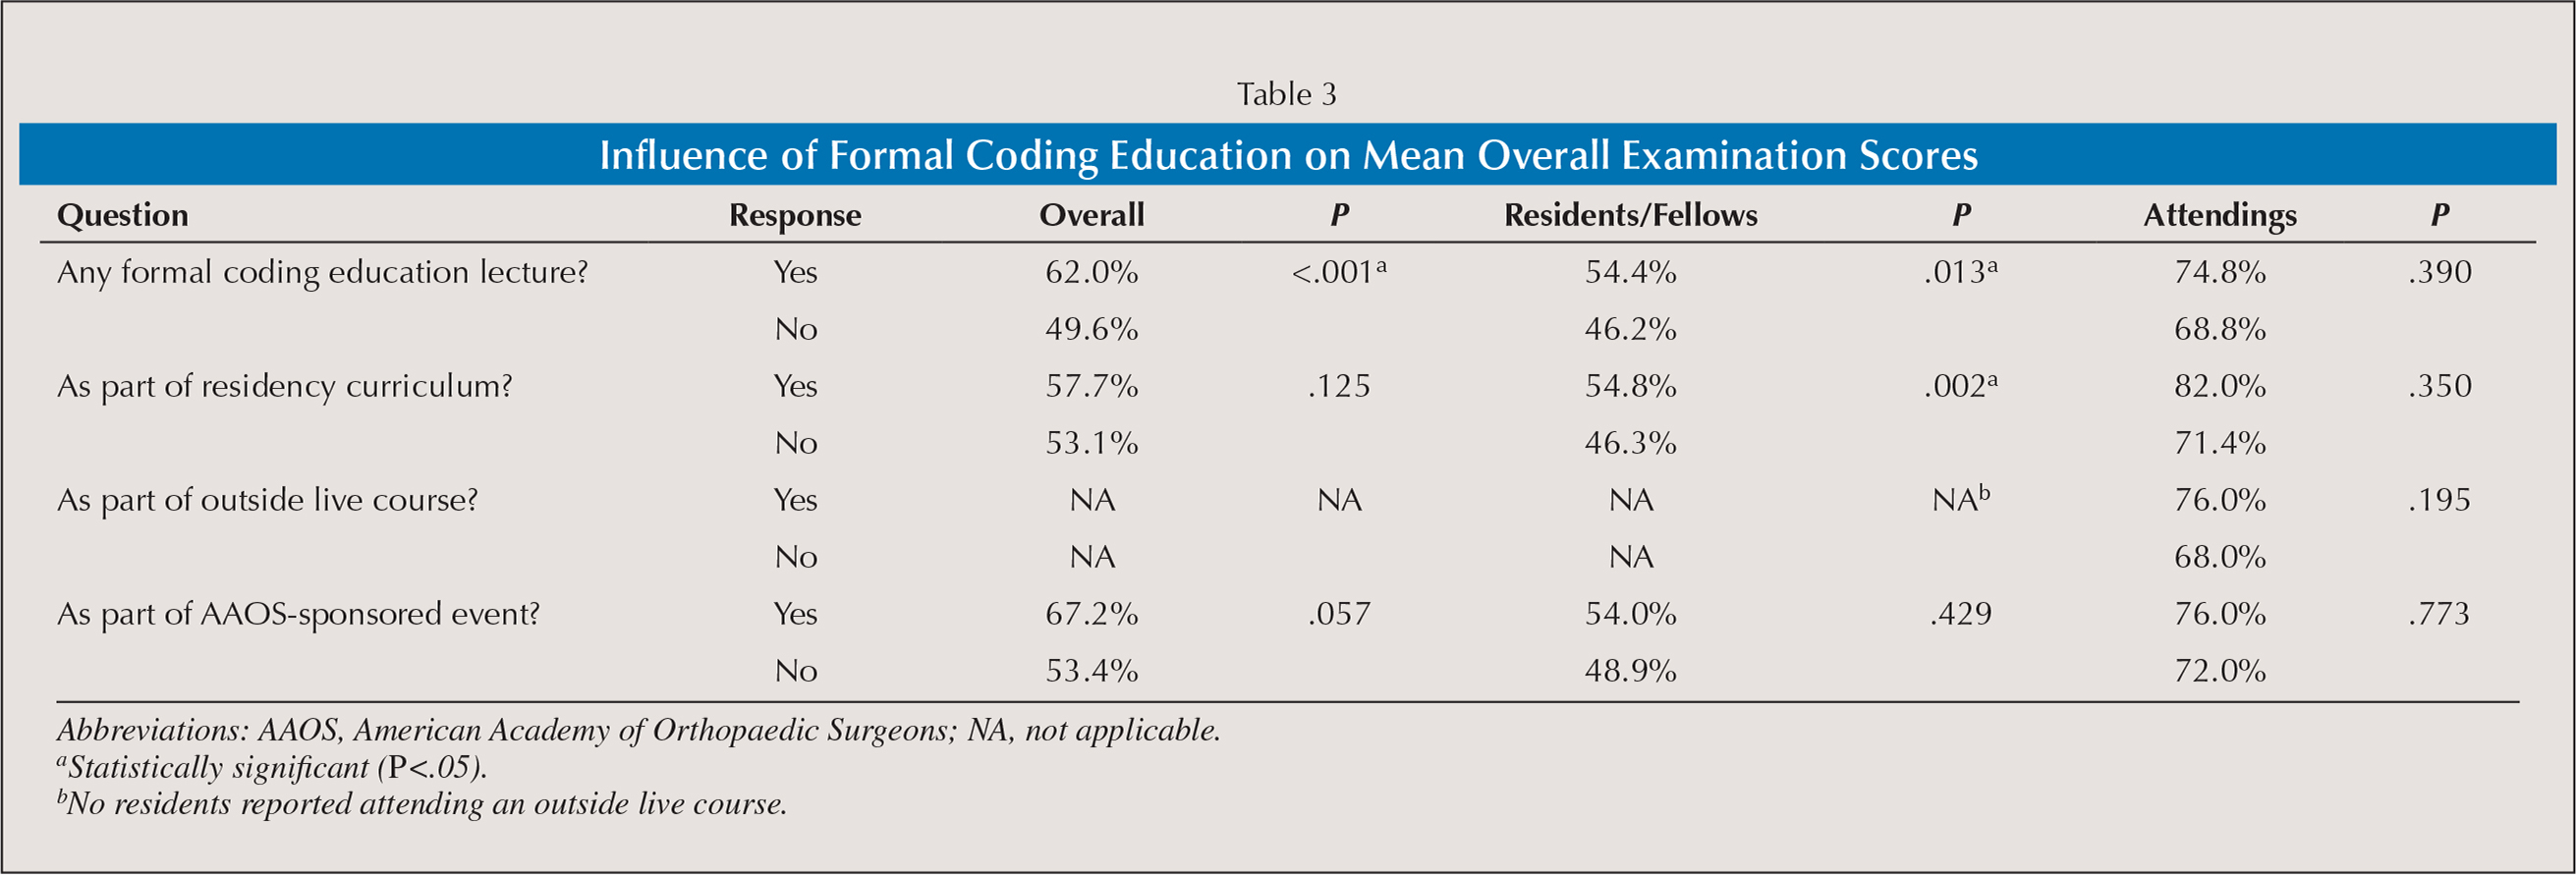 Influence of Formal Coding Education on Mean Overall Examination Scores